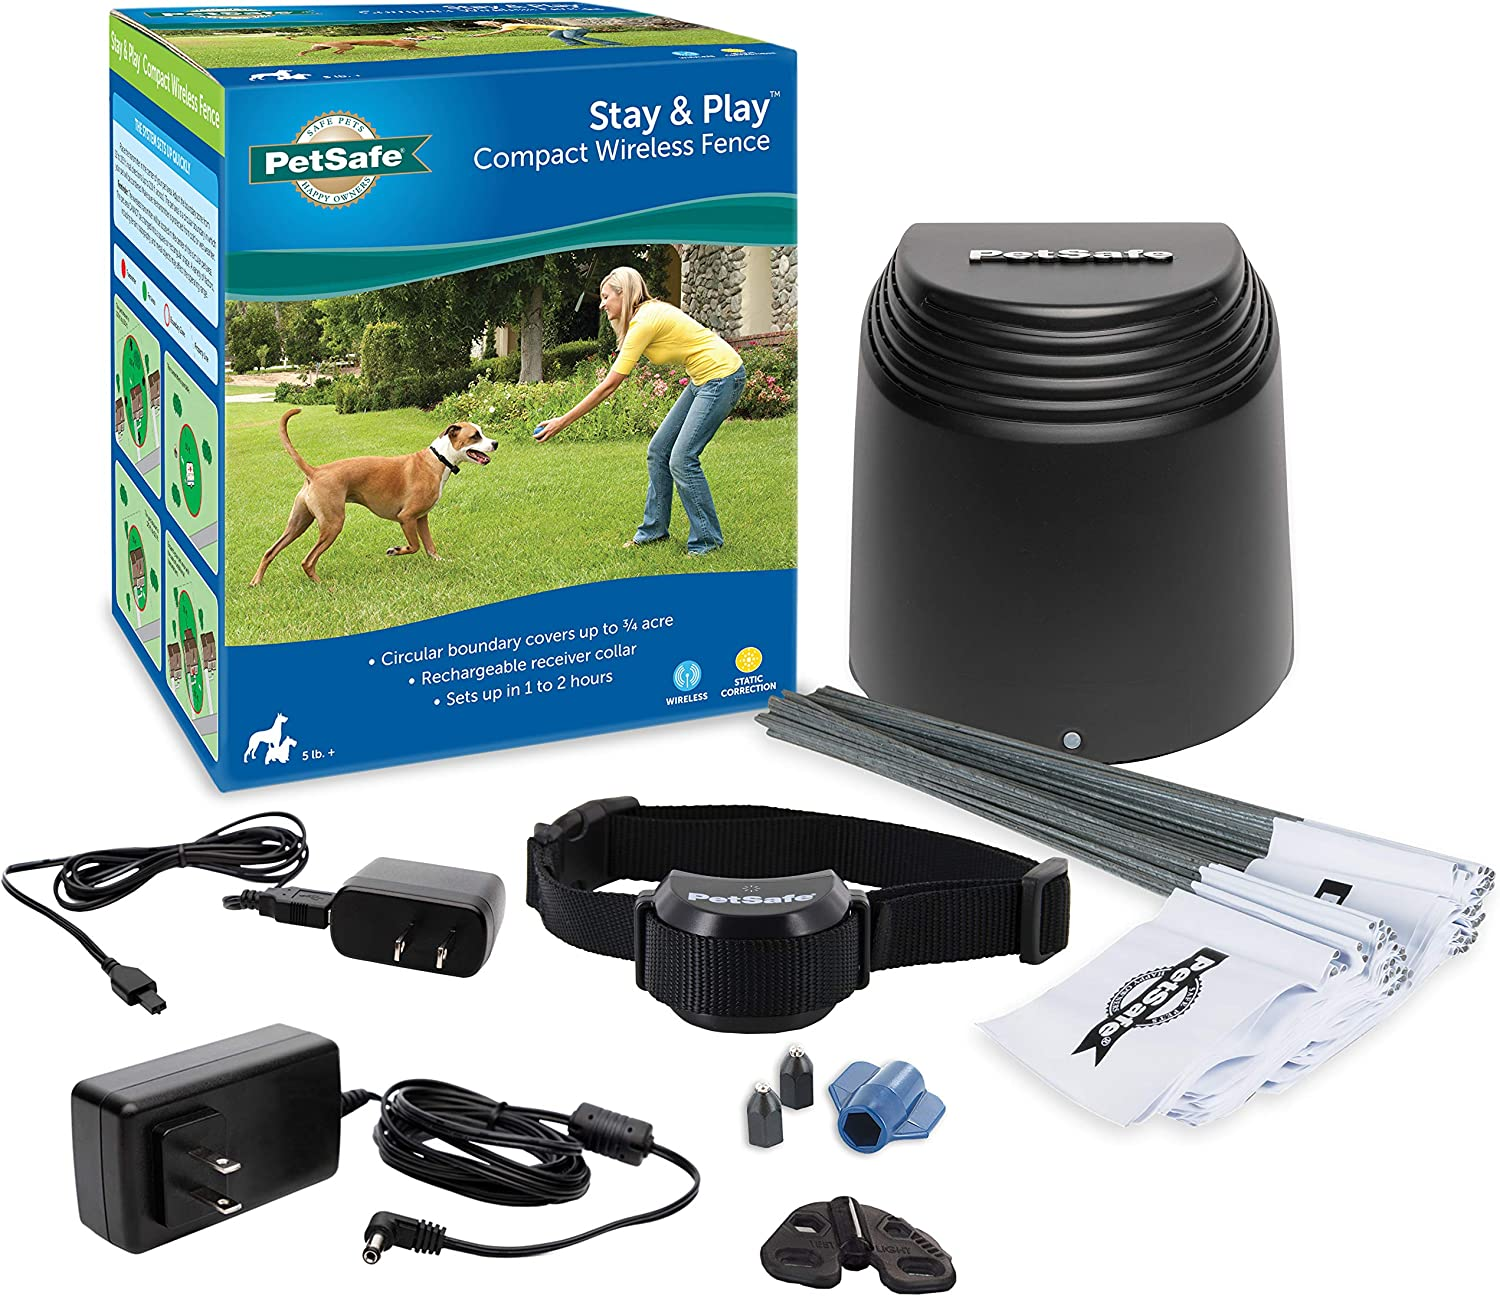 PetSafe Stay & Play Compact Wireless Fence for Dogs & Cats